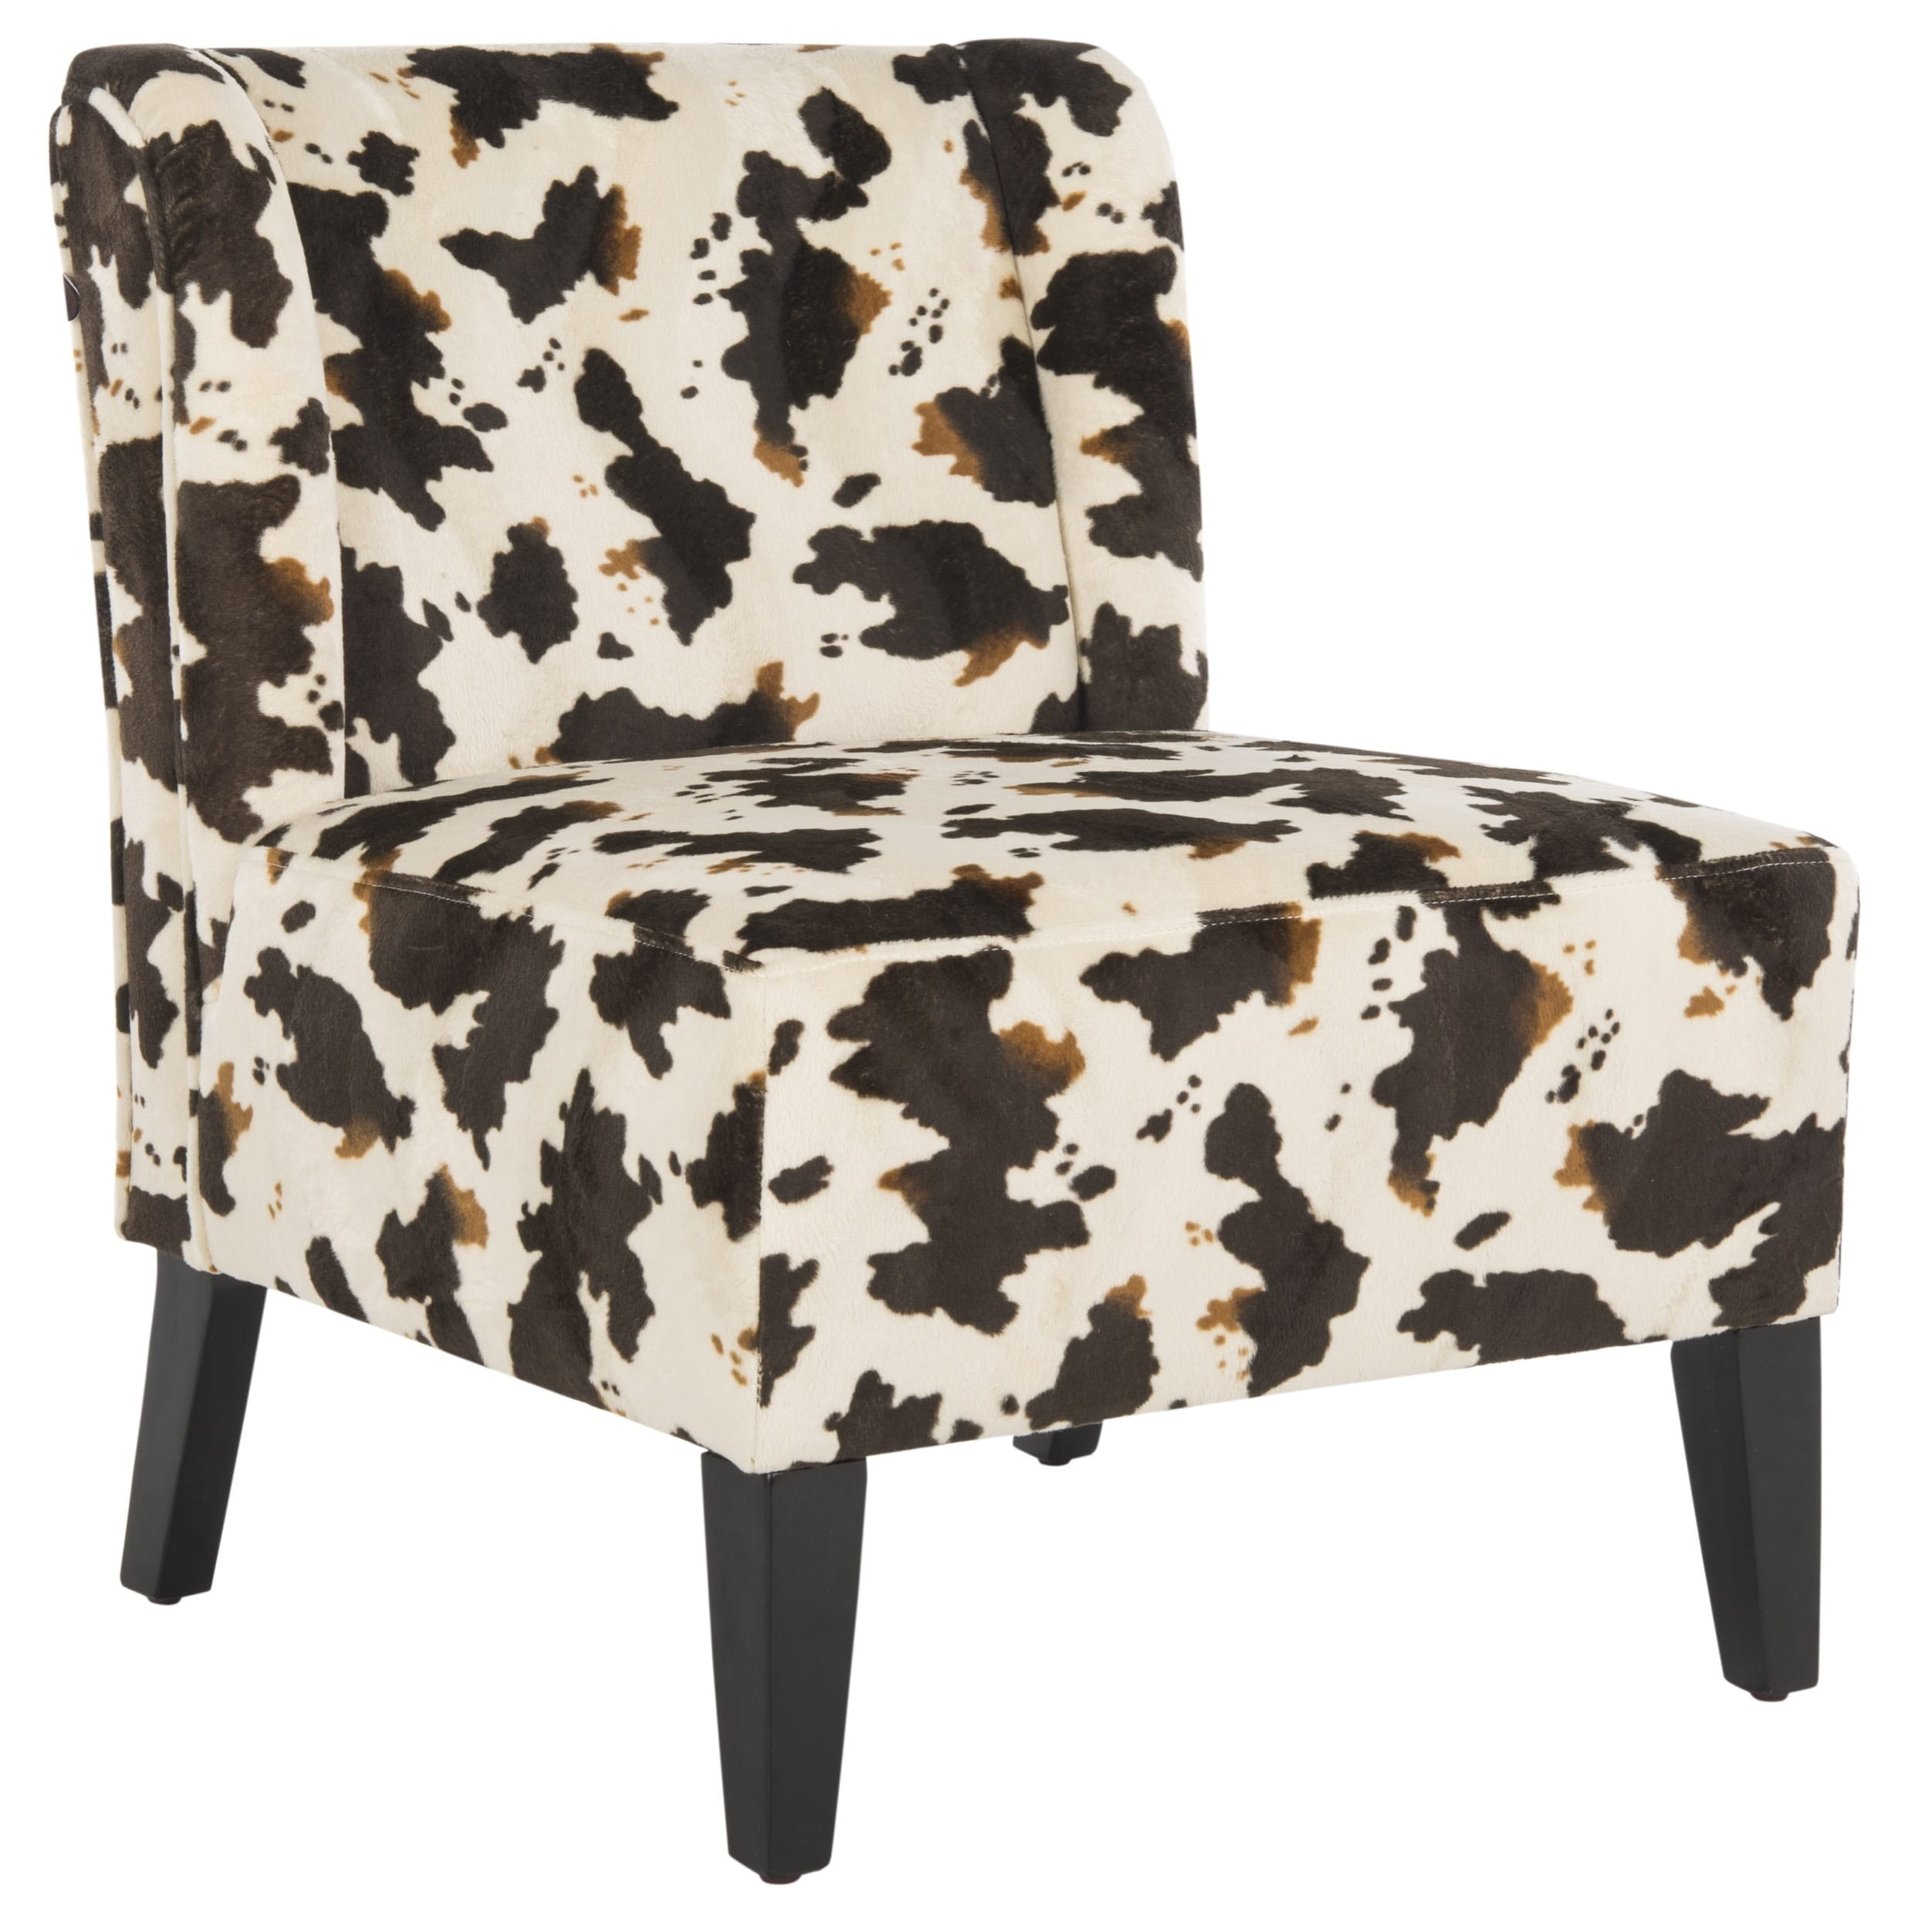 Safavieh Cow Hide Print Lounge Chair   Free Shipping Today   Overstock    13688872